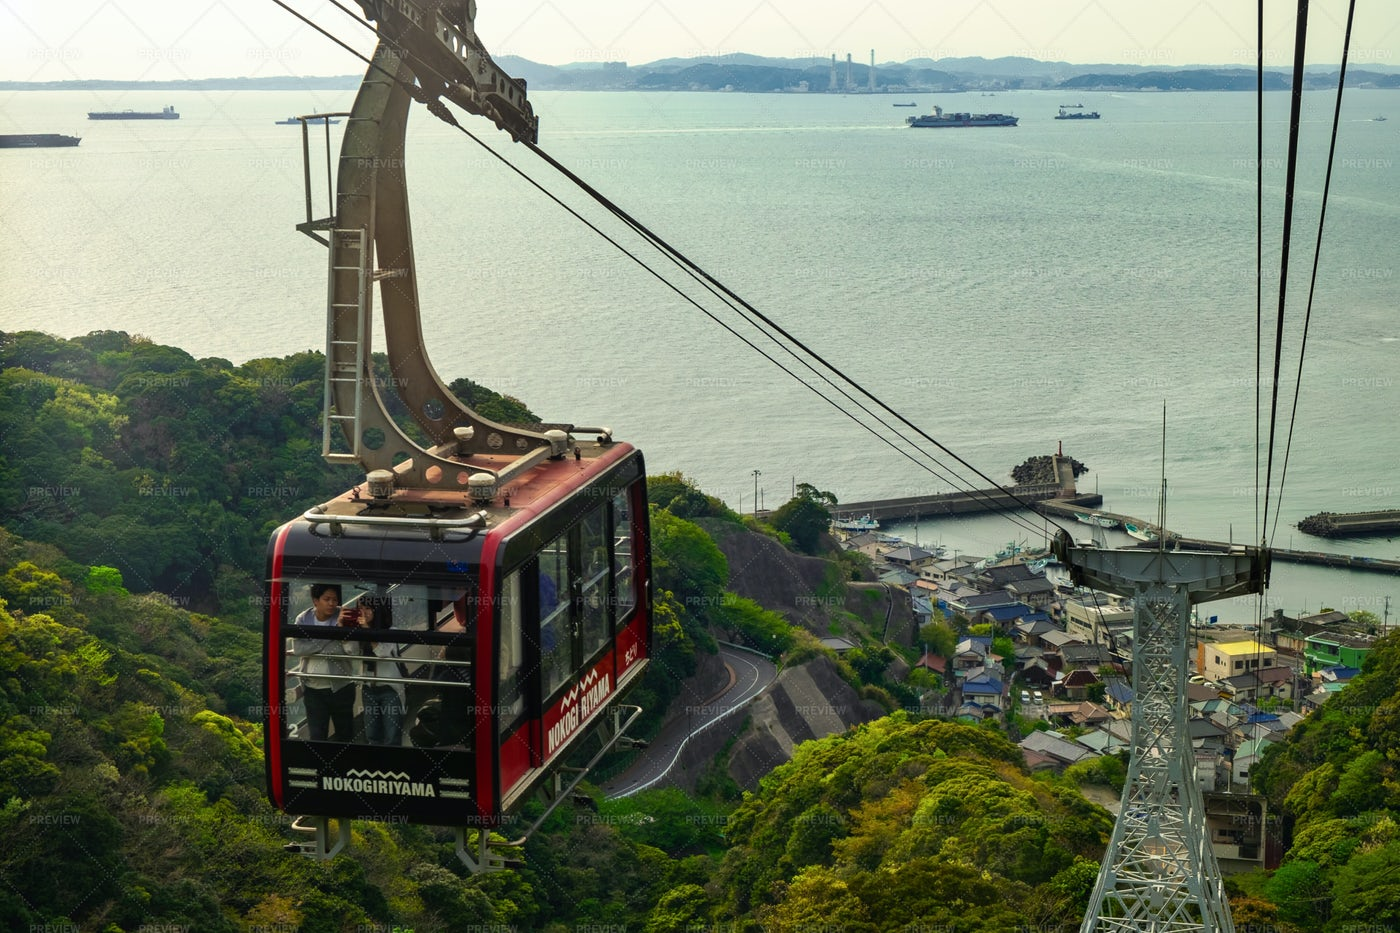 Cable Car And Sea: Stock Photos